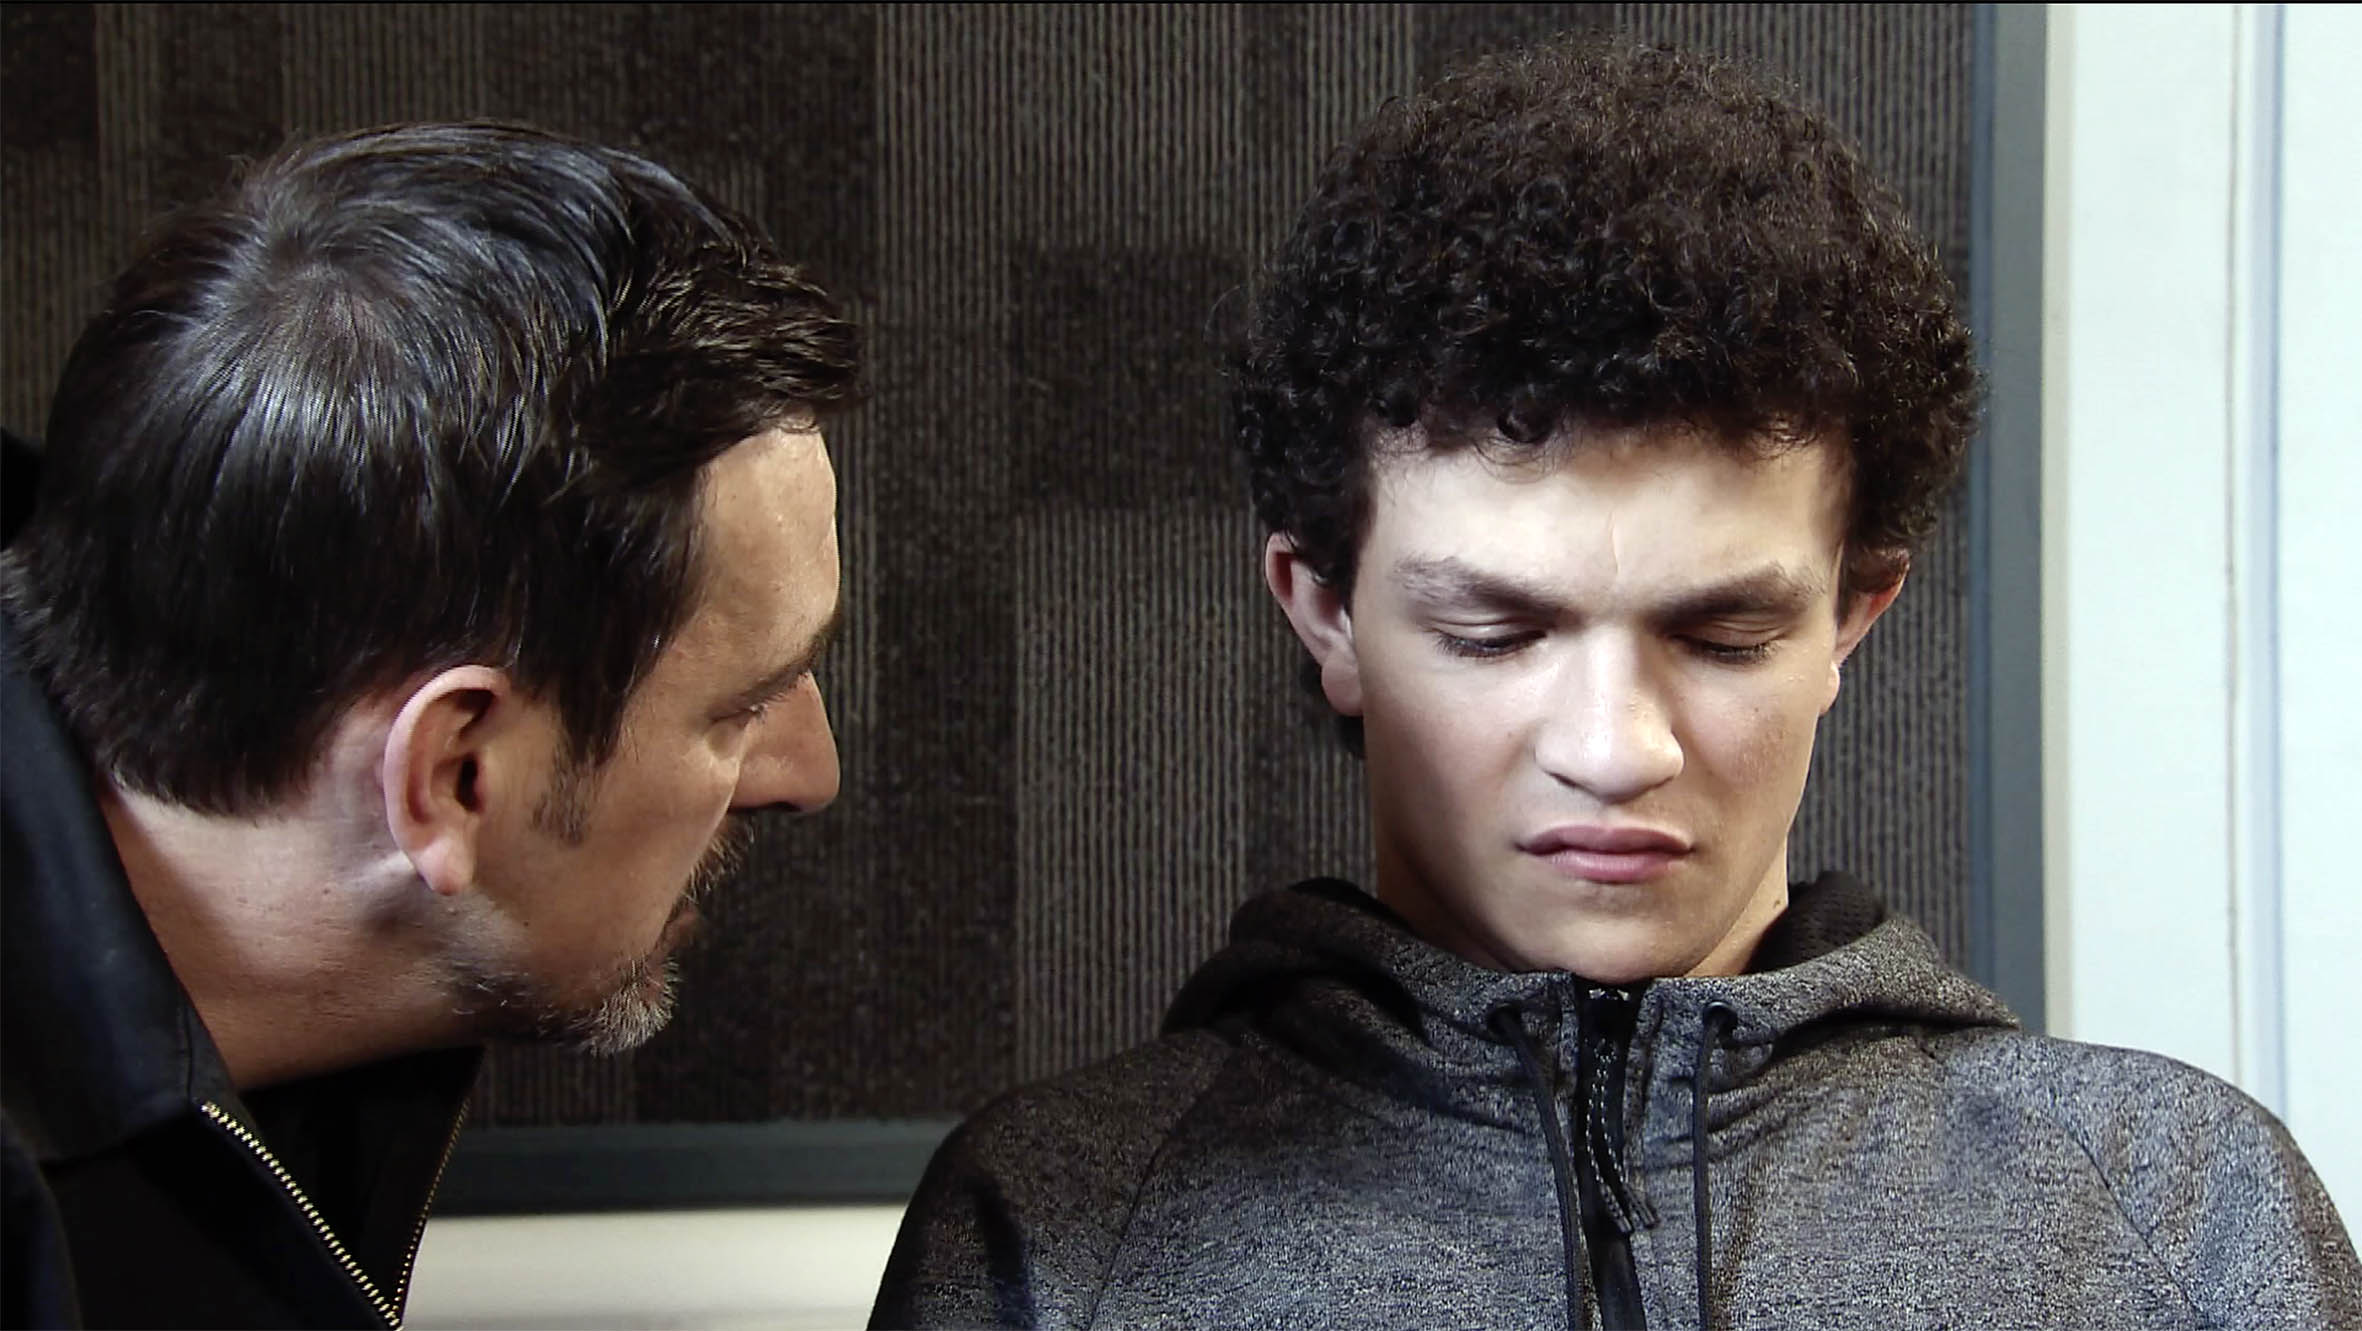 17-year-old Coronation Street star Alex Bain becomes a father as his daughter Lydia-Rose is born